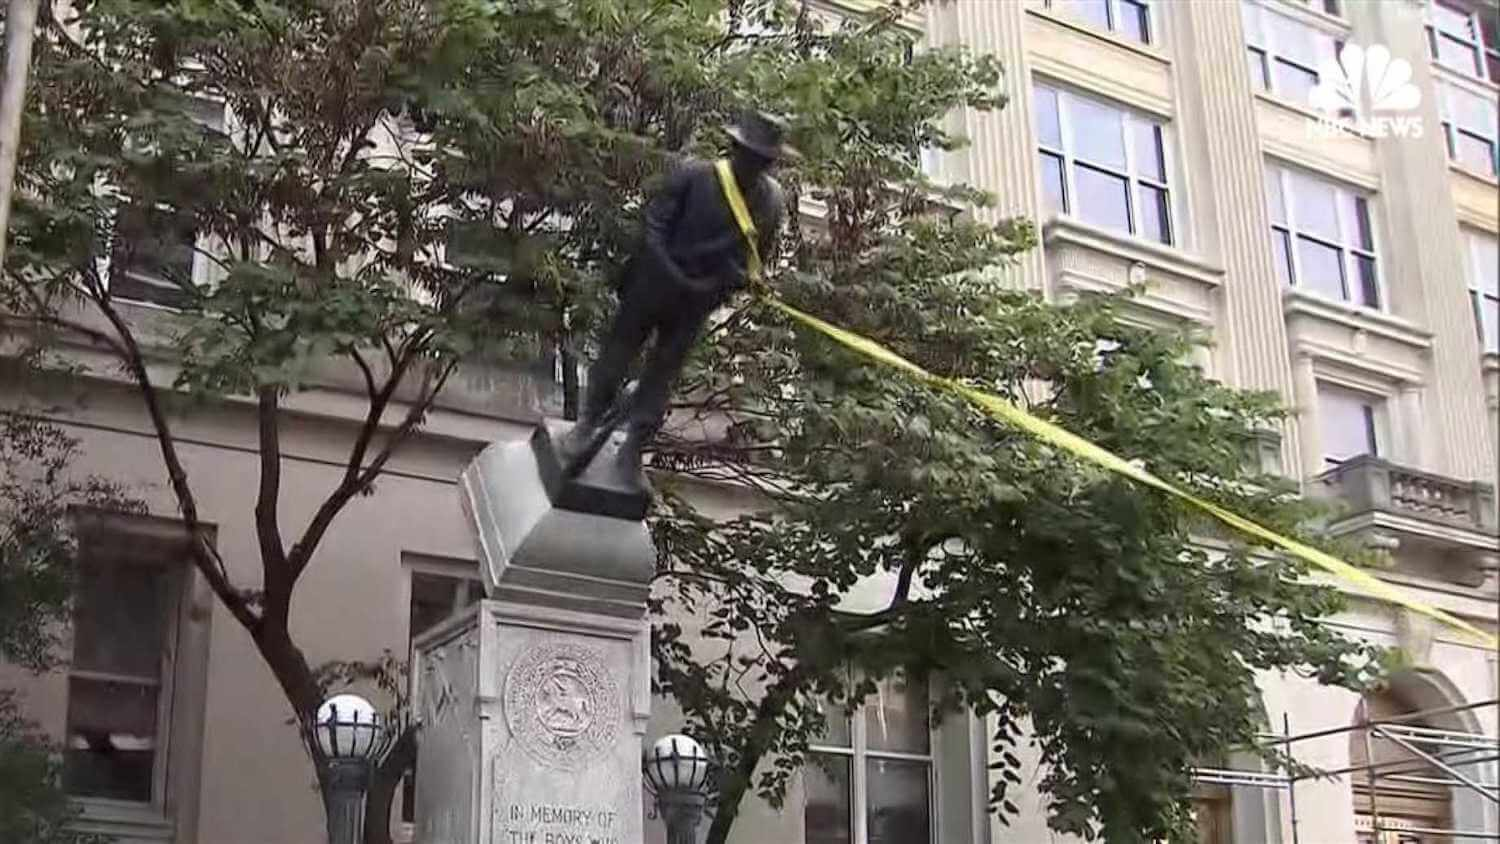 Confederate Statue Toppled In Durham, NC